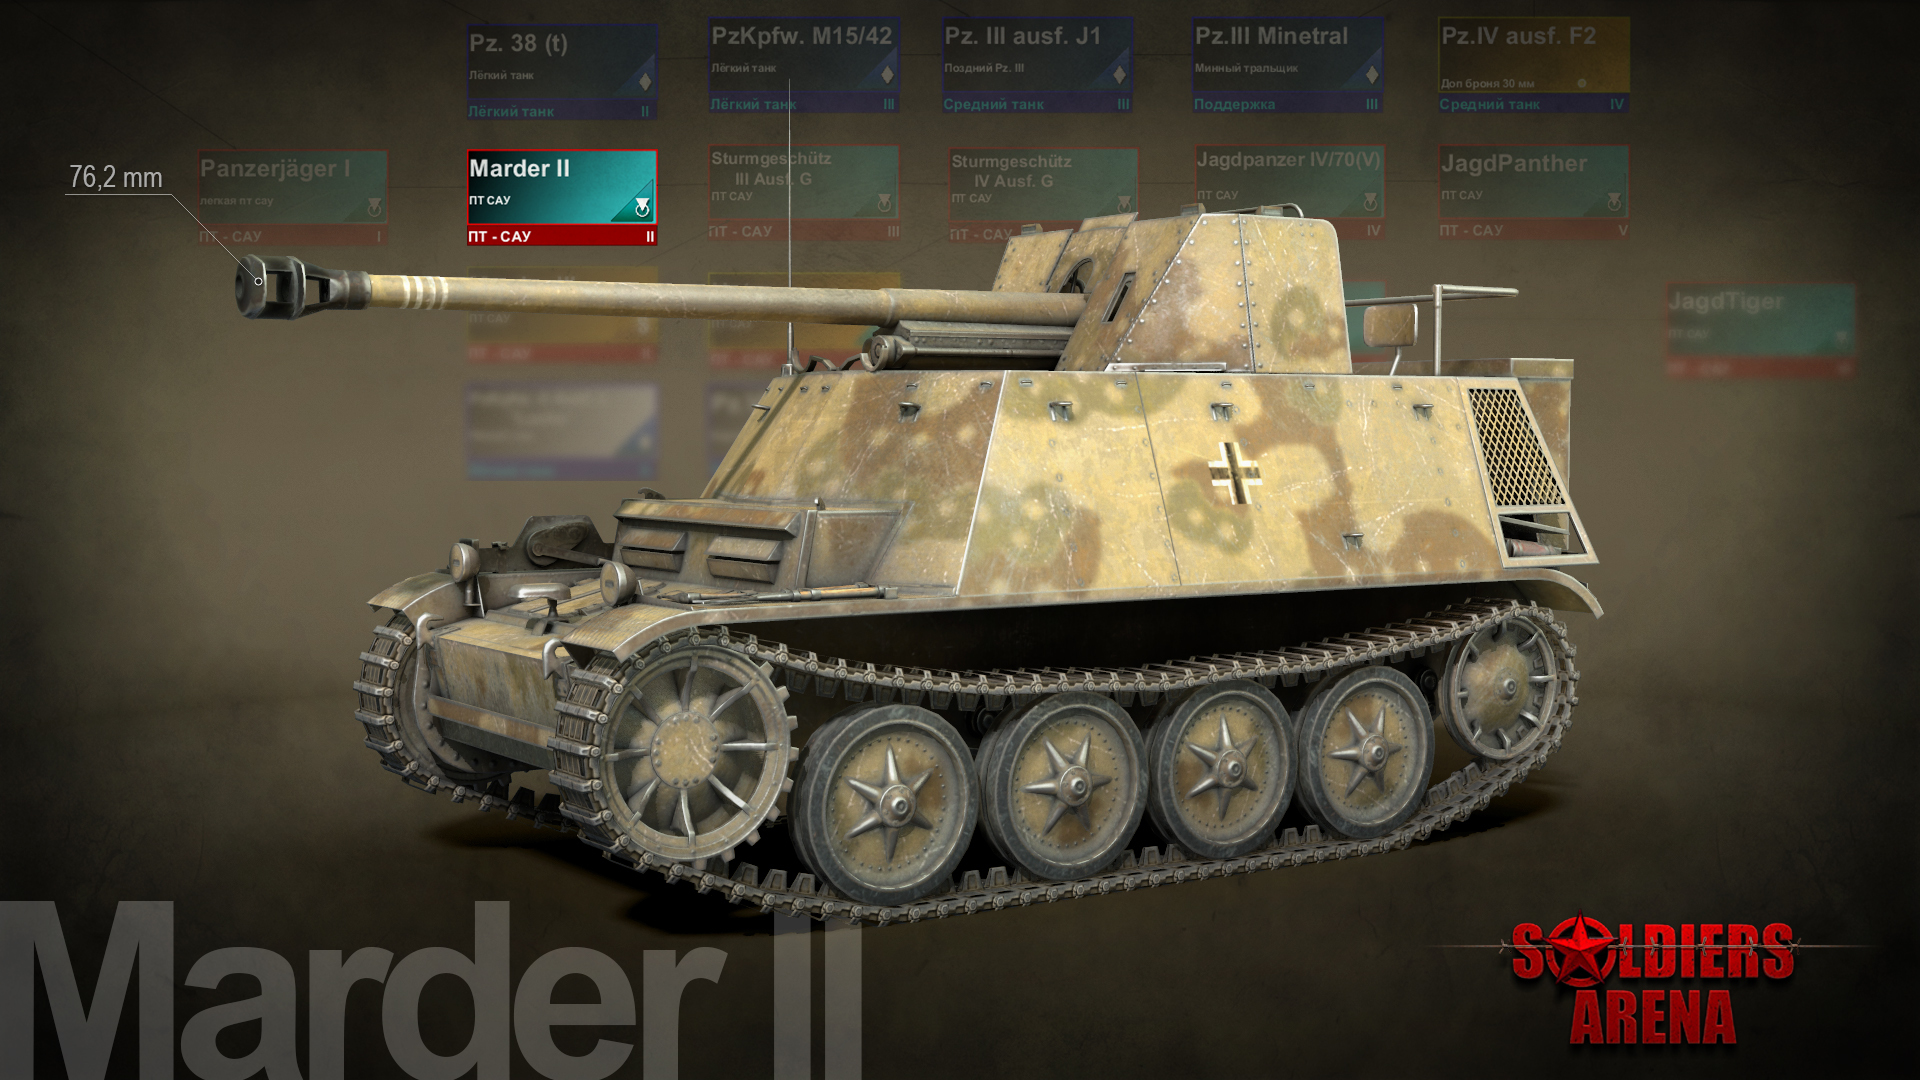 Marder III - Soldiers: Arena Арт